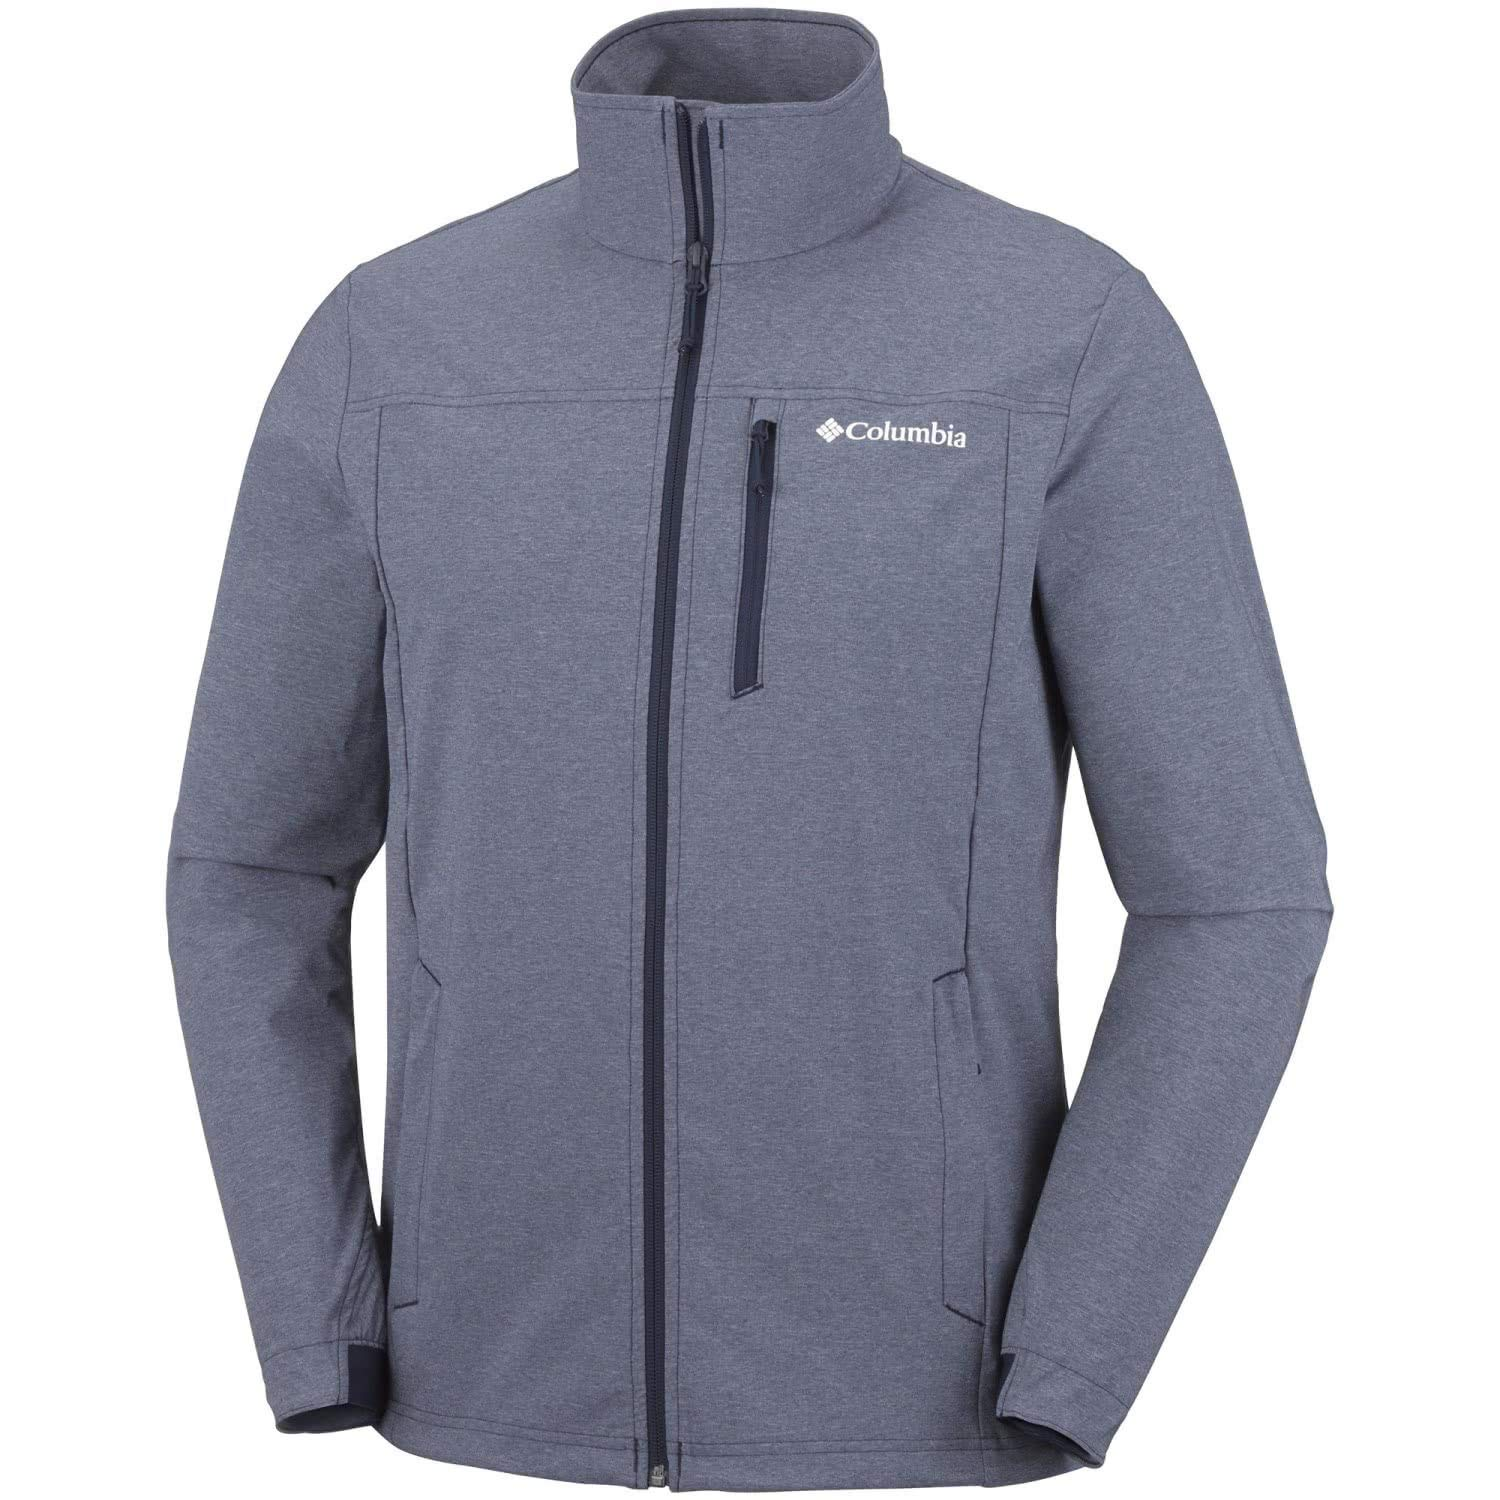 Columbia Softshell Jacke für Herren, HEATHER CANYON HOODLESS JACKET, Polyester, Blau (Collegiate Navy Heather), 1772761